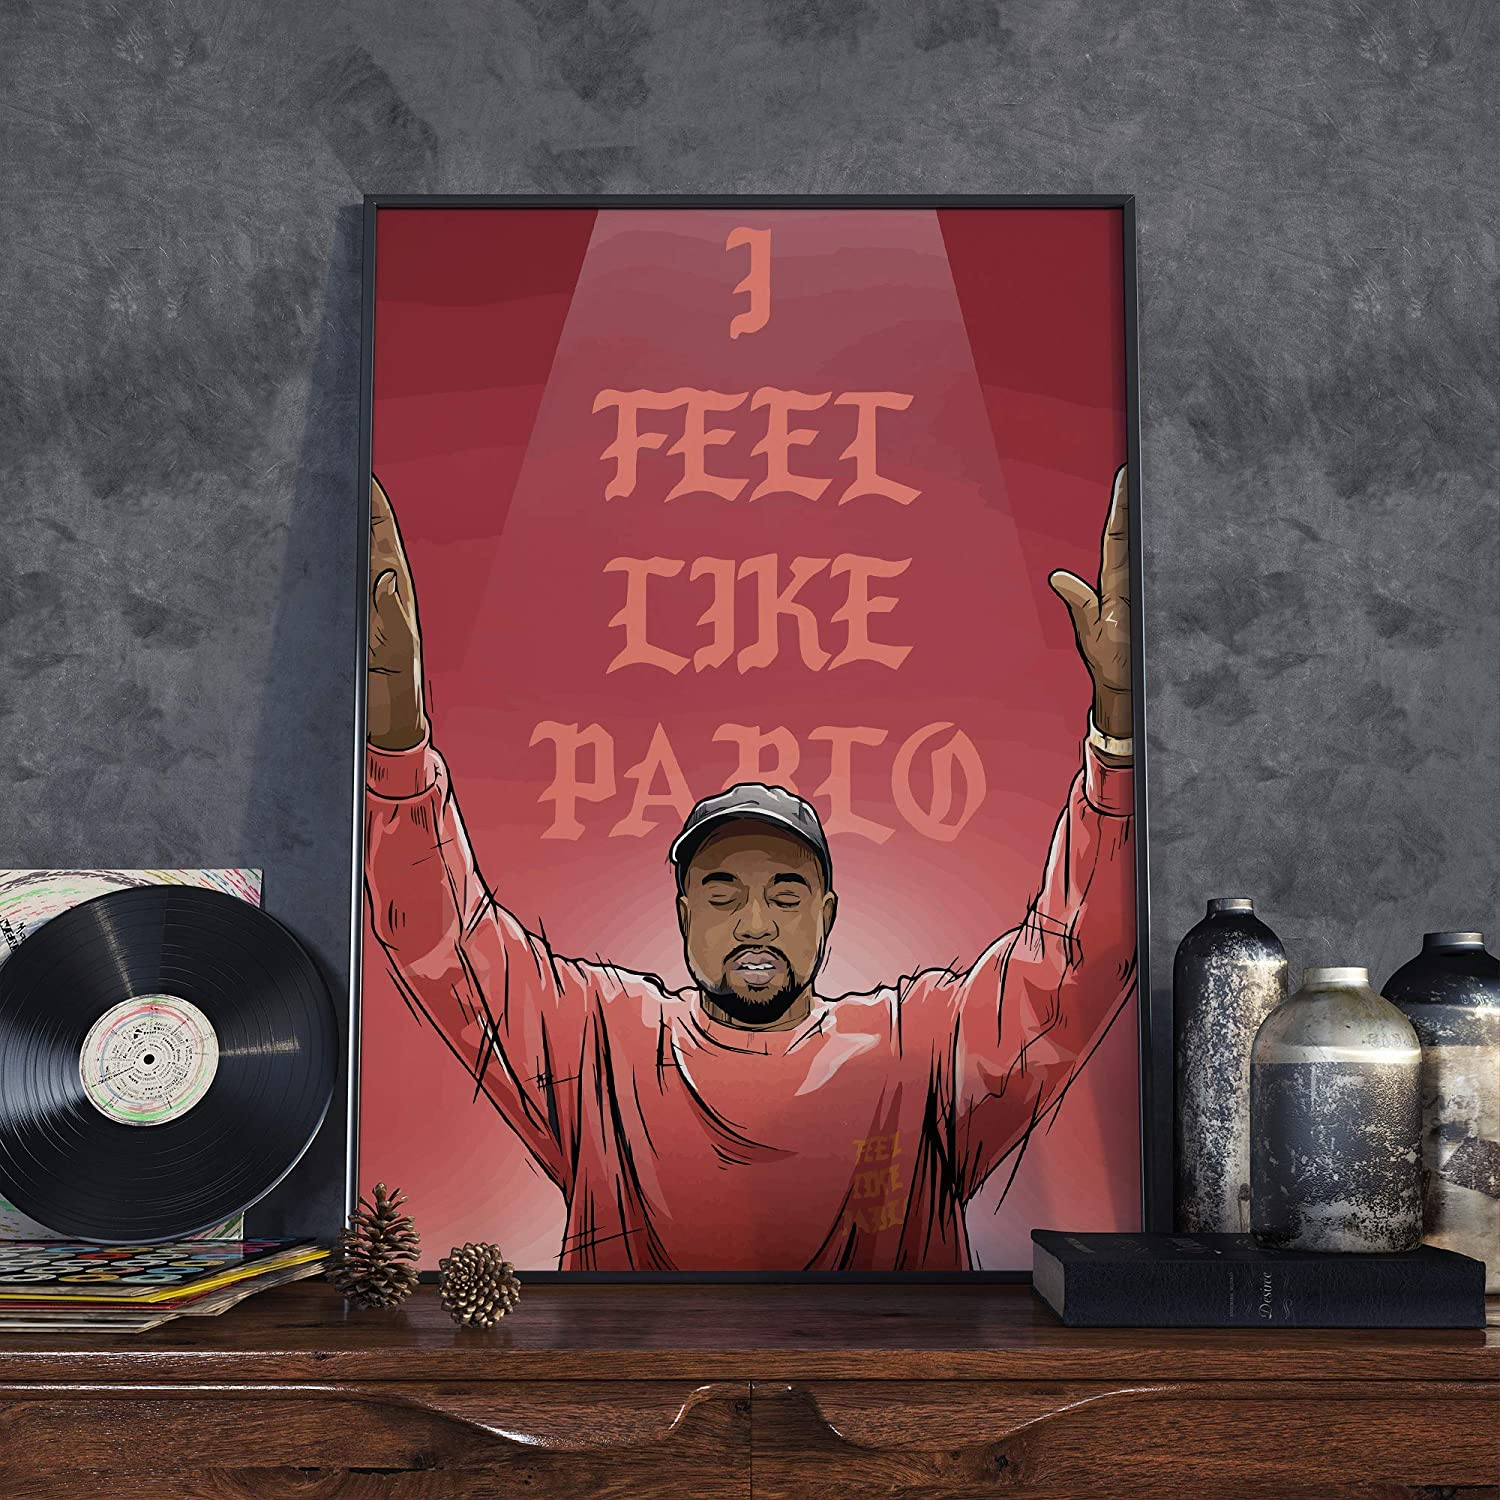 Kanye West High order Poster - Albuquerque Mall 'I Feel A2 Size Like Pablo'